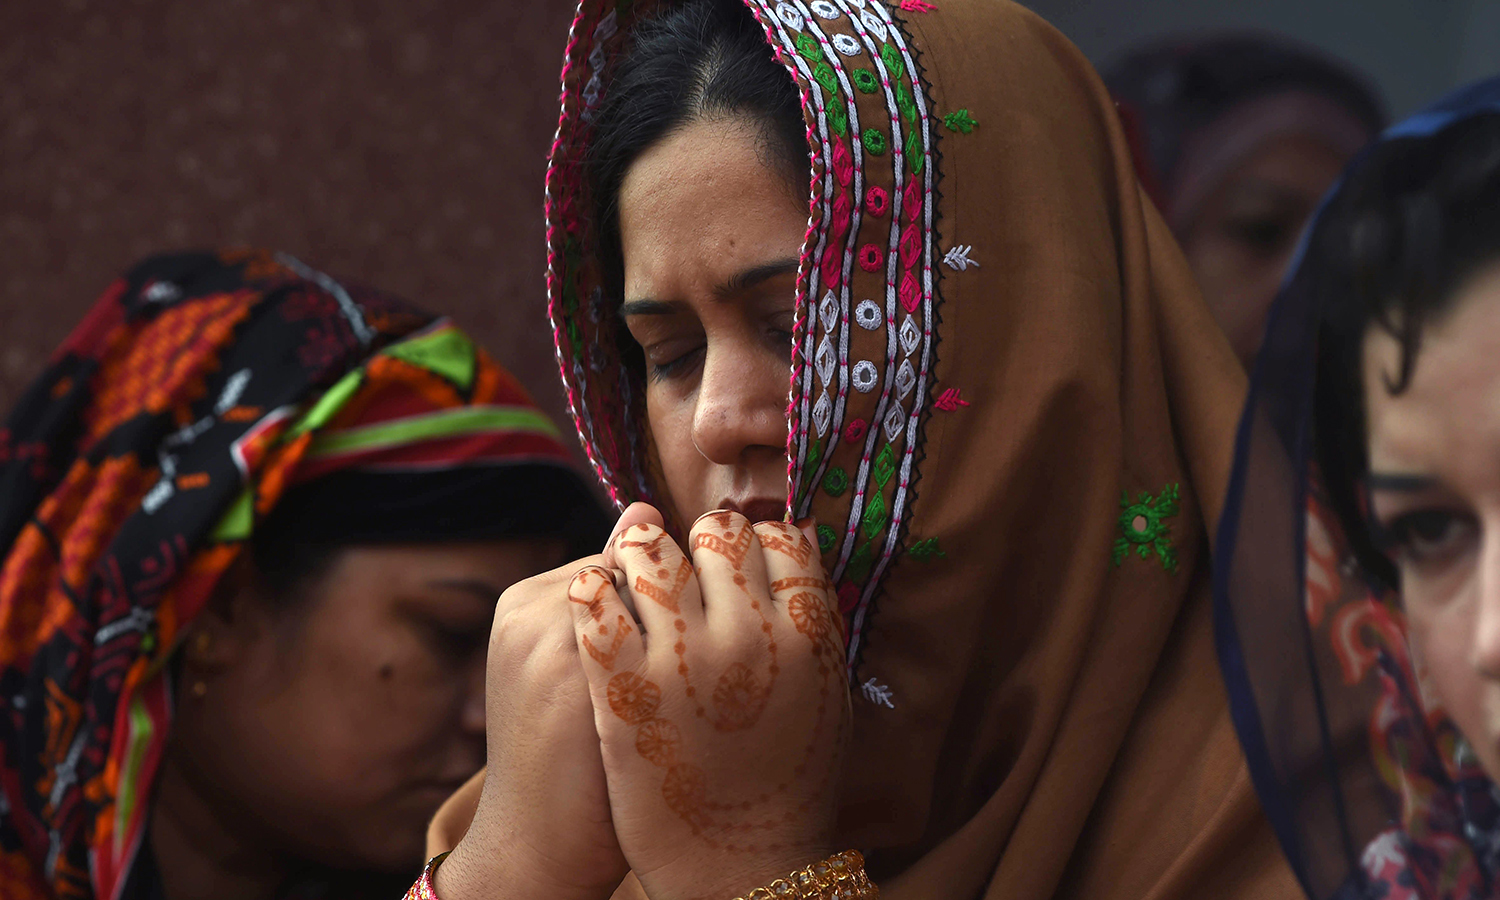 LAHORE: A woman offers prayers at the Badshahi Masjid on Wednesday. —AFP/Arif Hassan